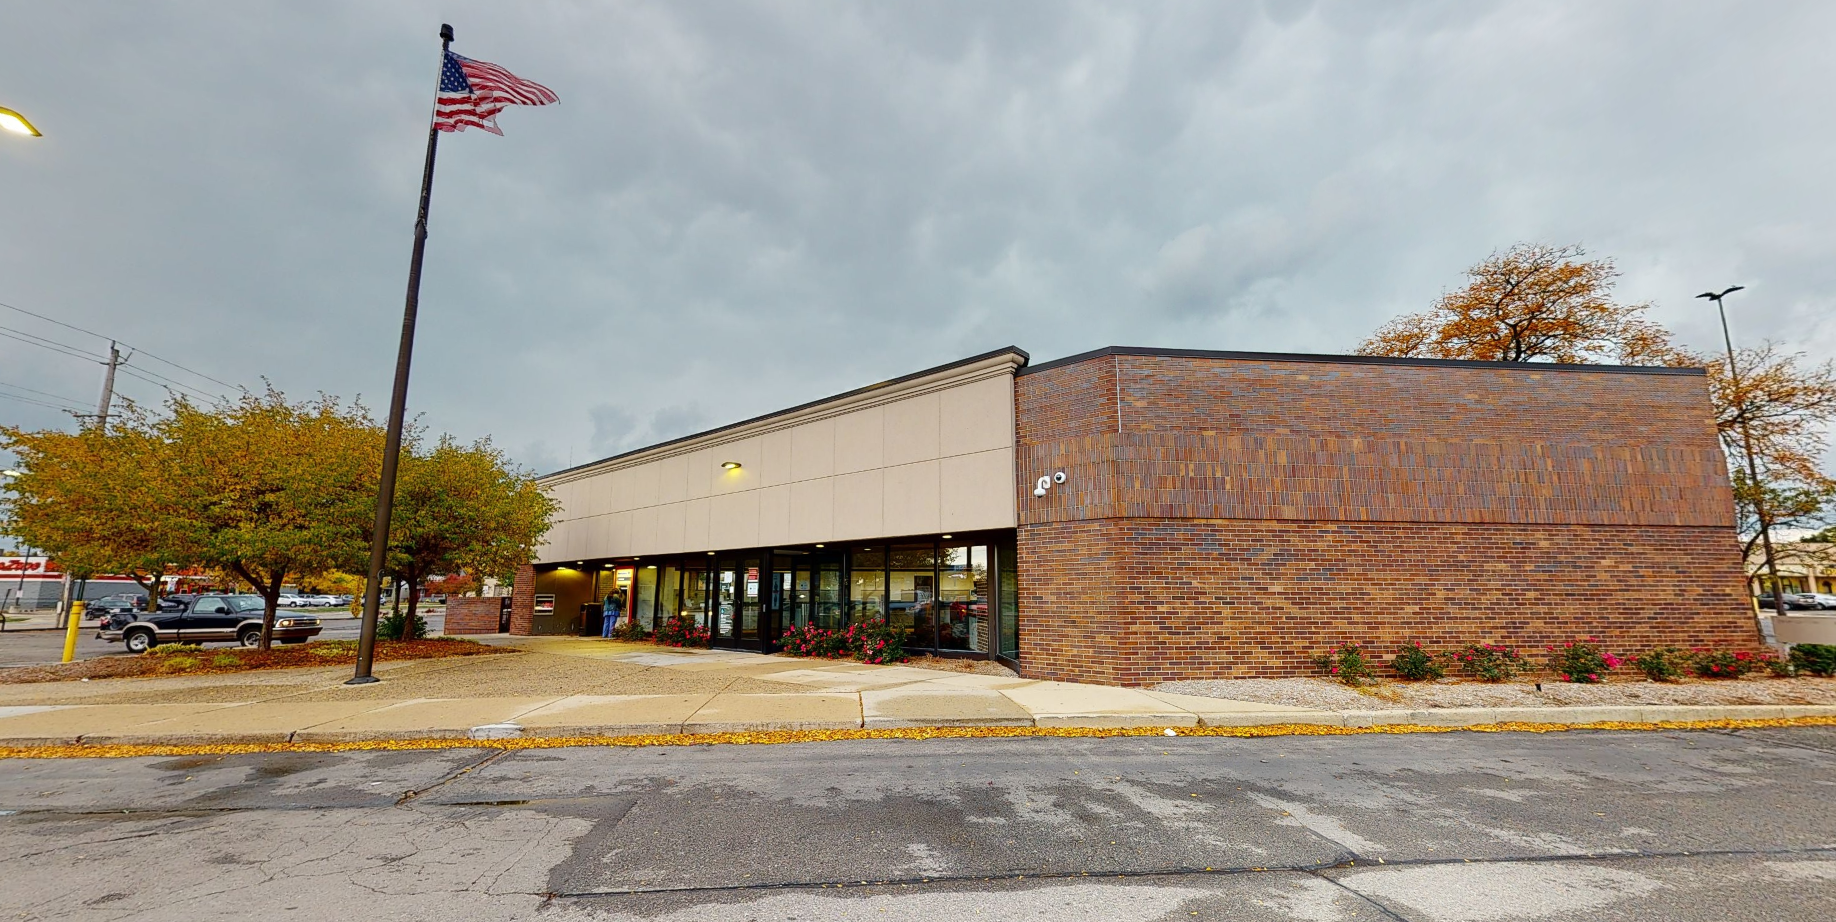 Bank of America financial center with drive-thru ATM   25001 Van Dyke Ave, Center Line, MI 48015